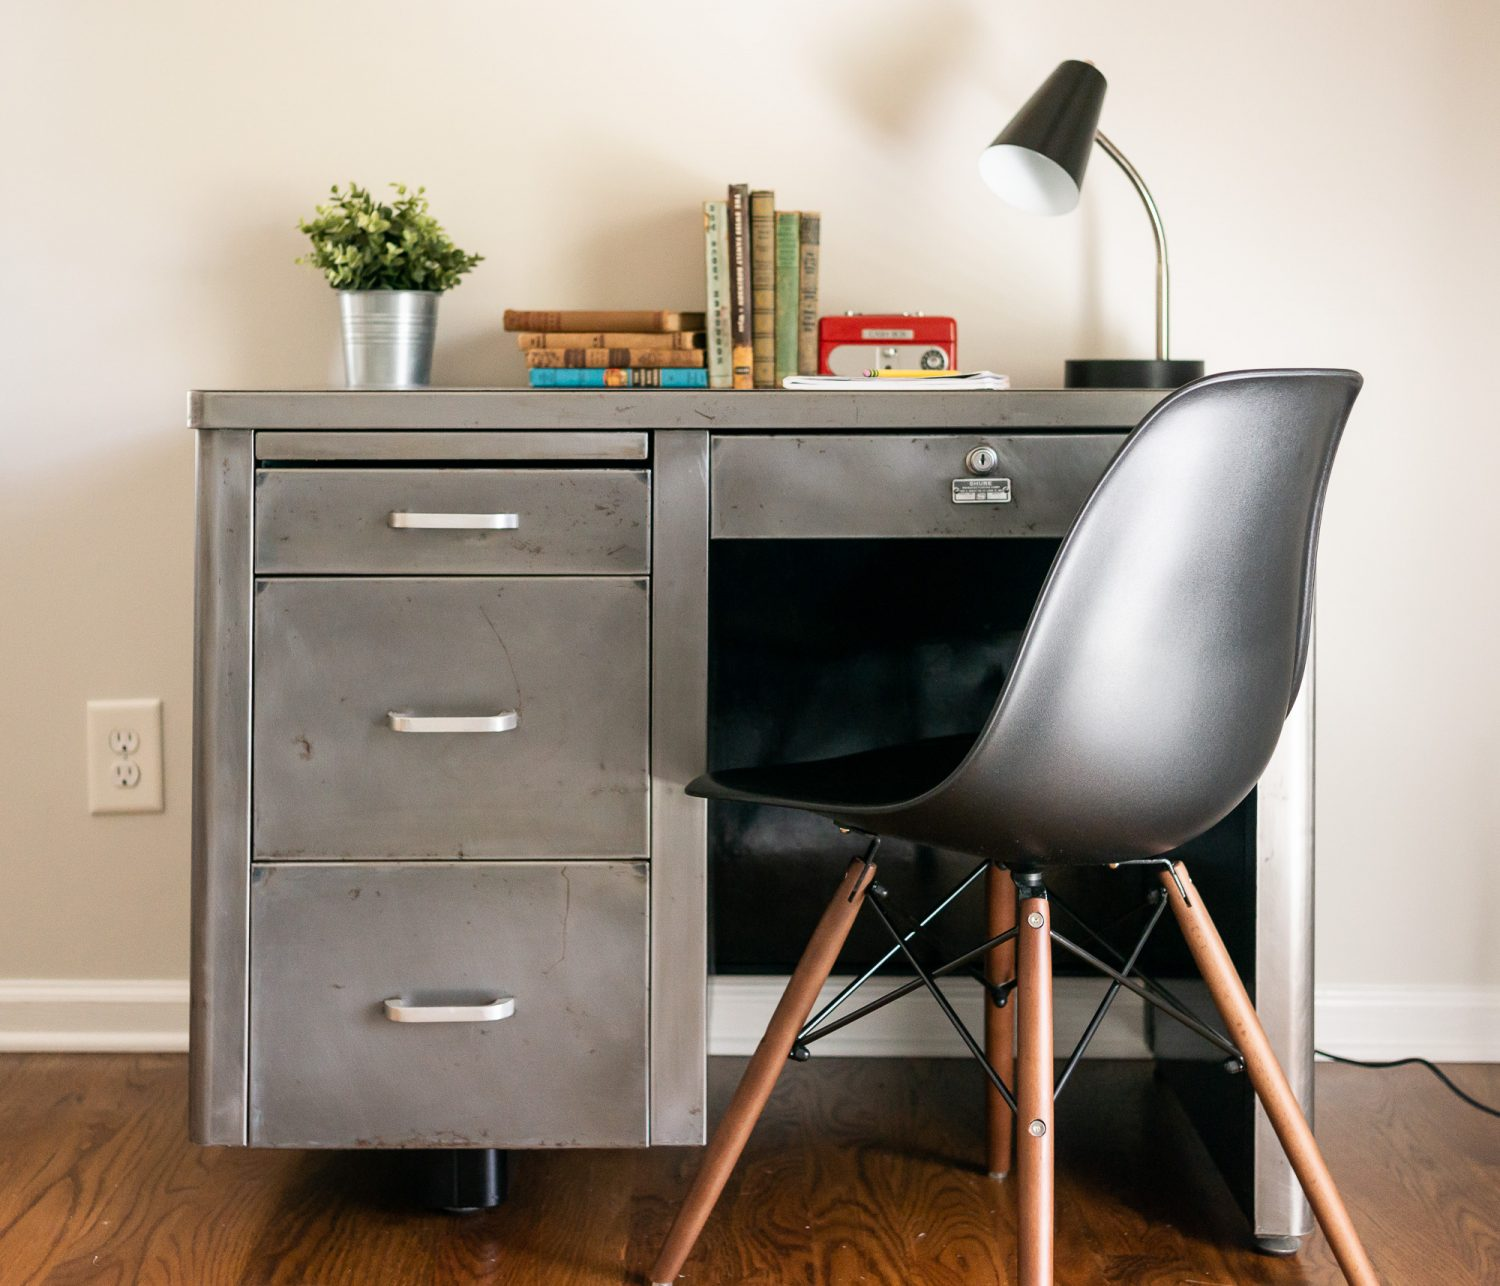 Bare Metal Mid Century Steel Taker Desk For Boys Room